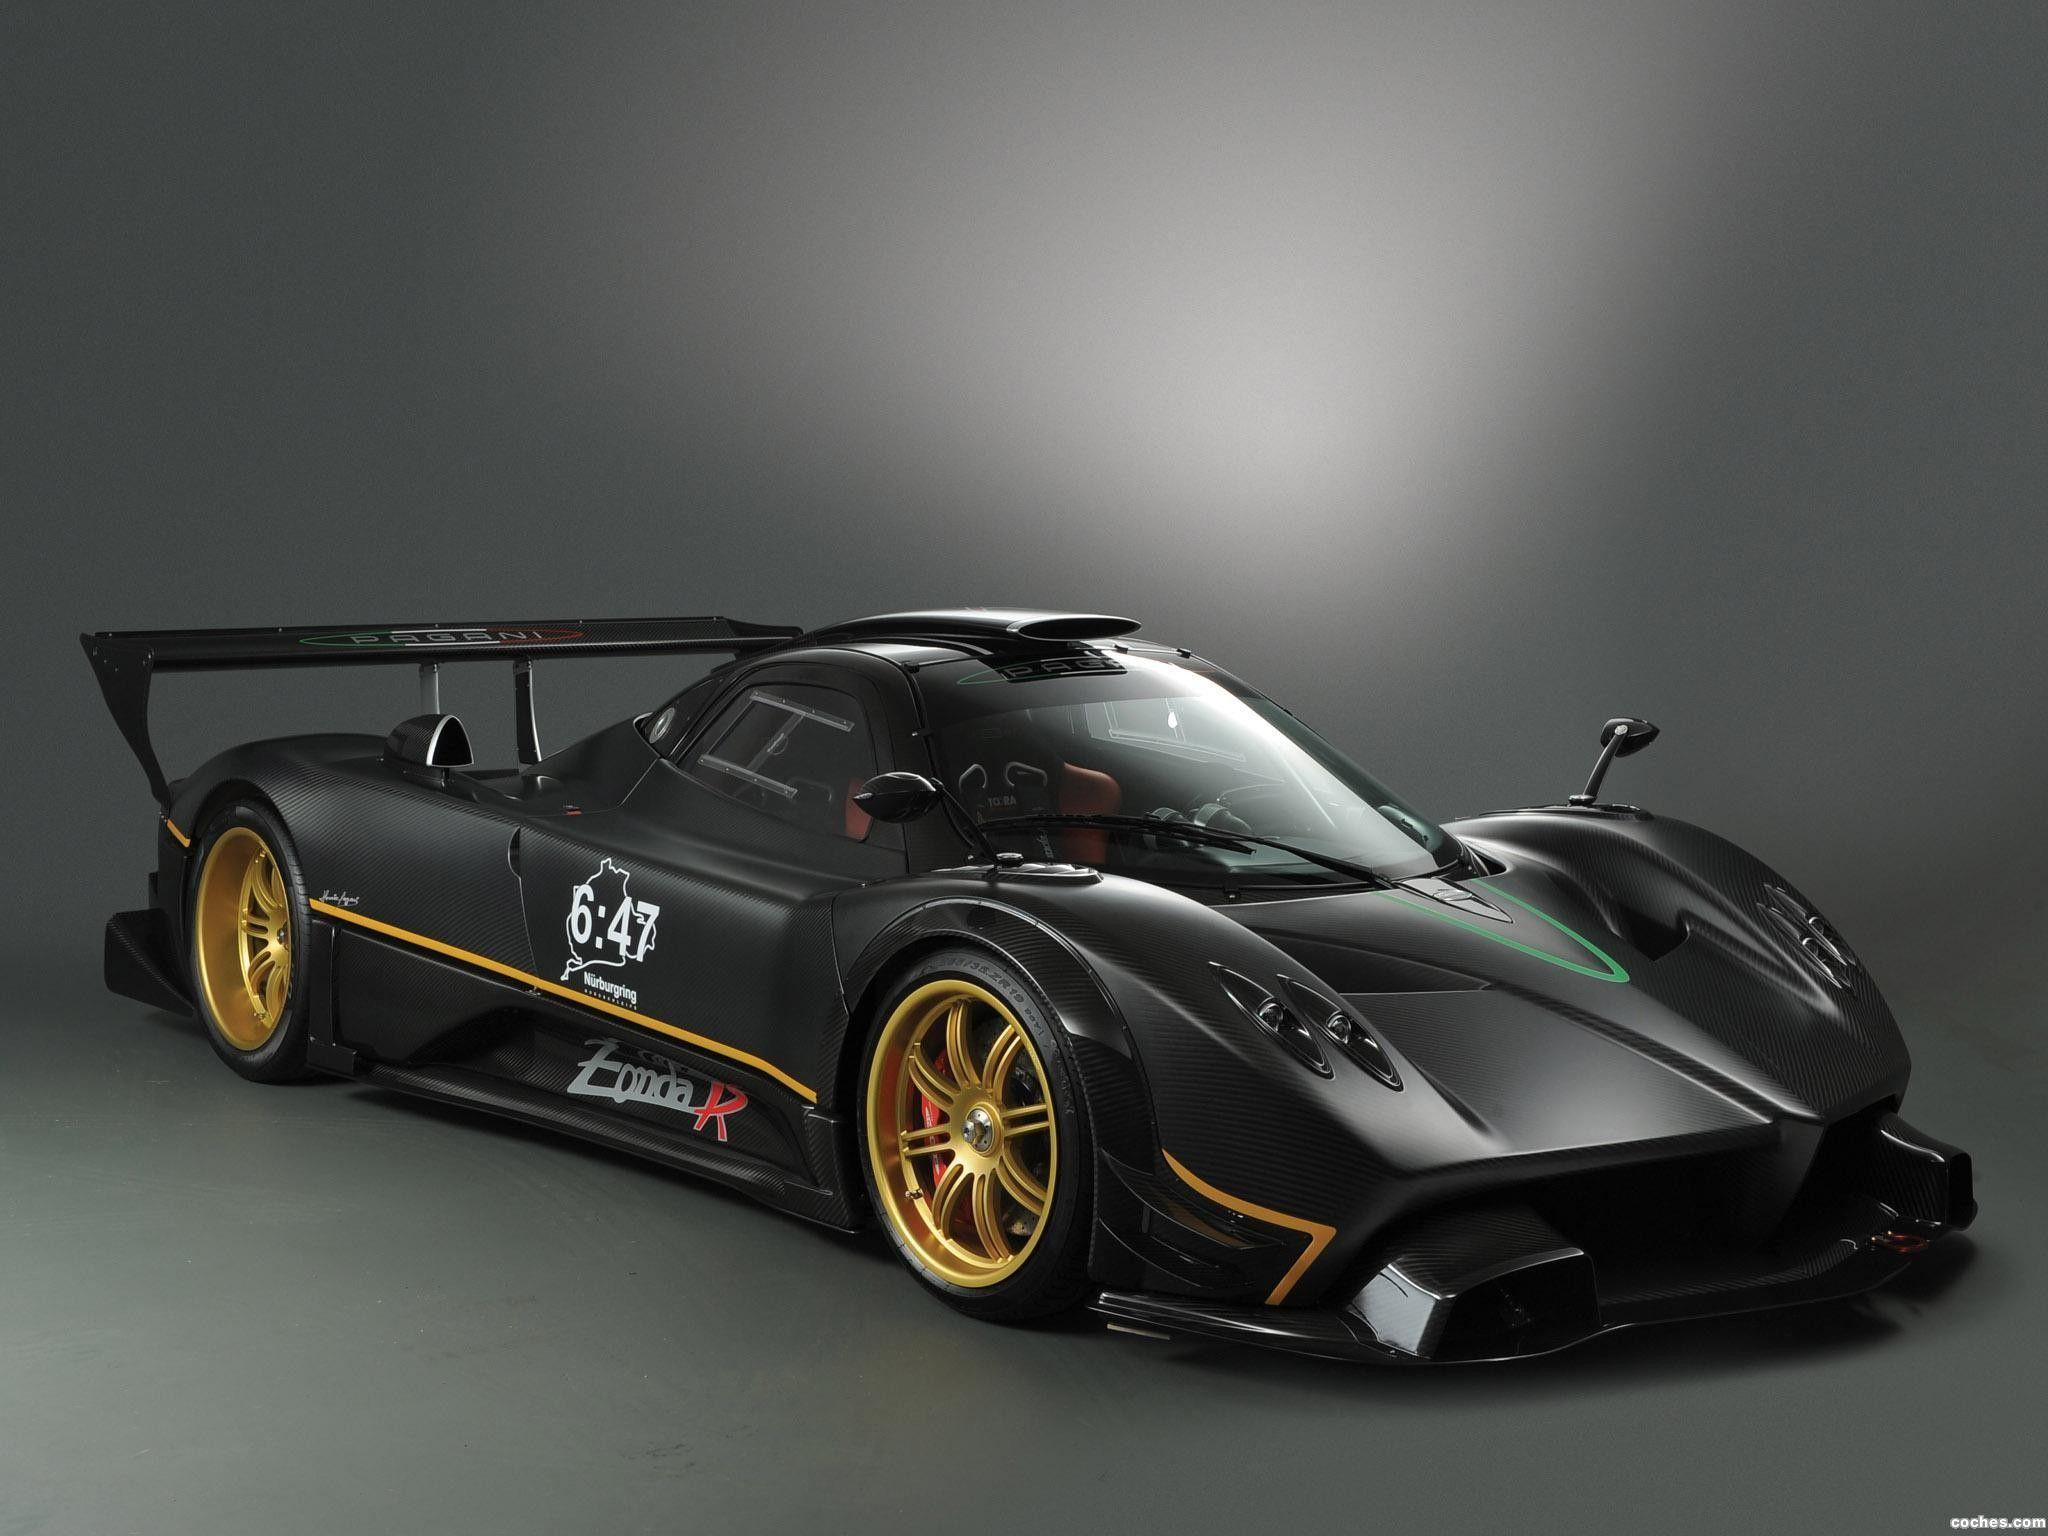 Ordinaire Vehicles Pagani Zonda R Wallpapers (Desktop, Phone, Tablet .